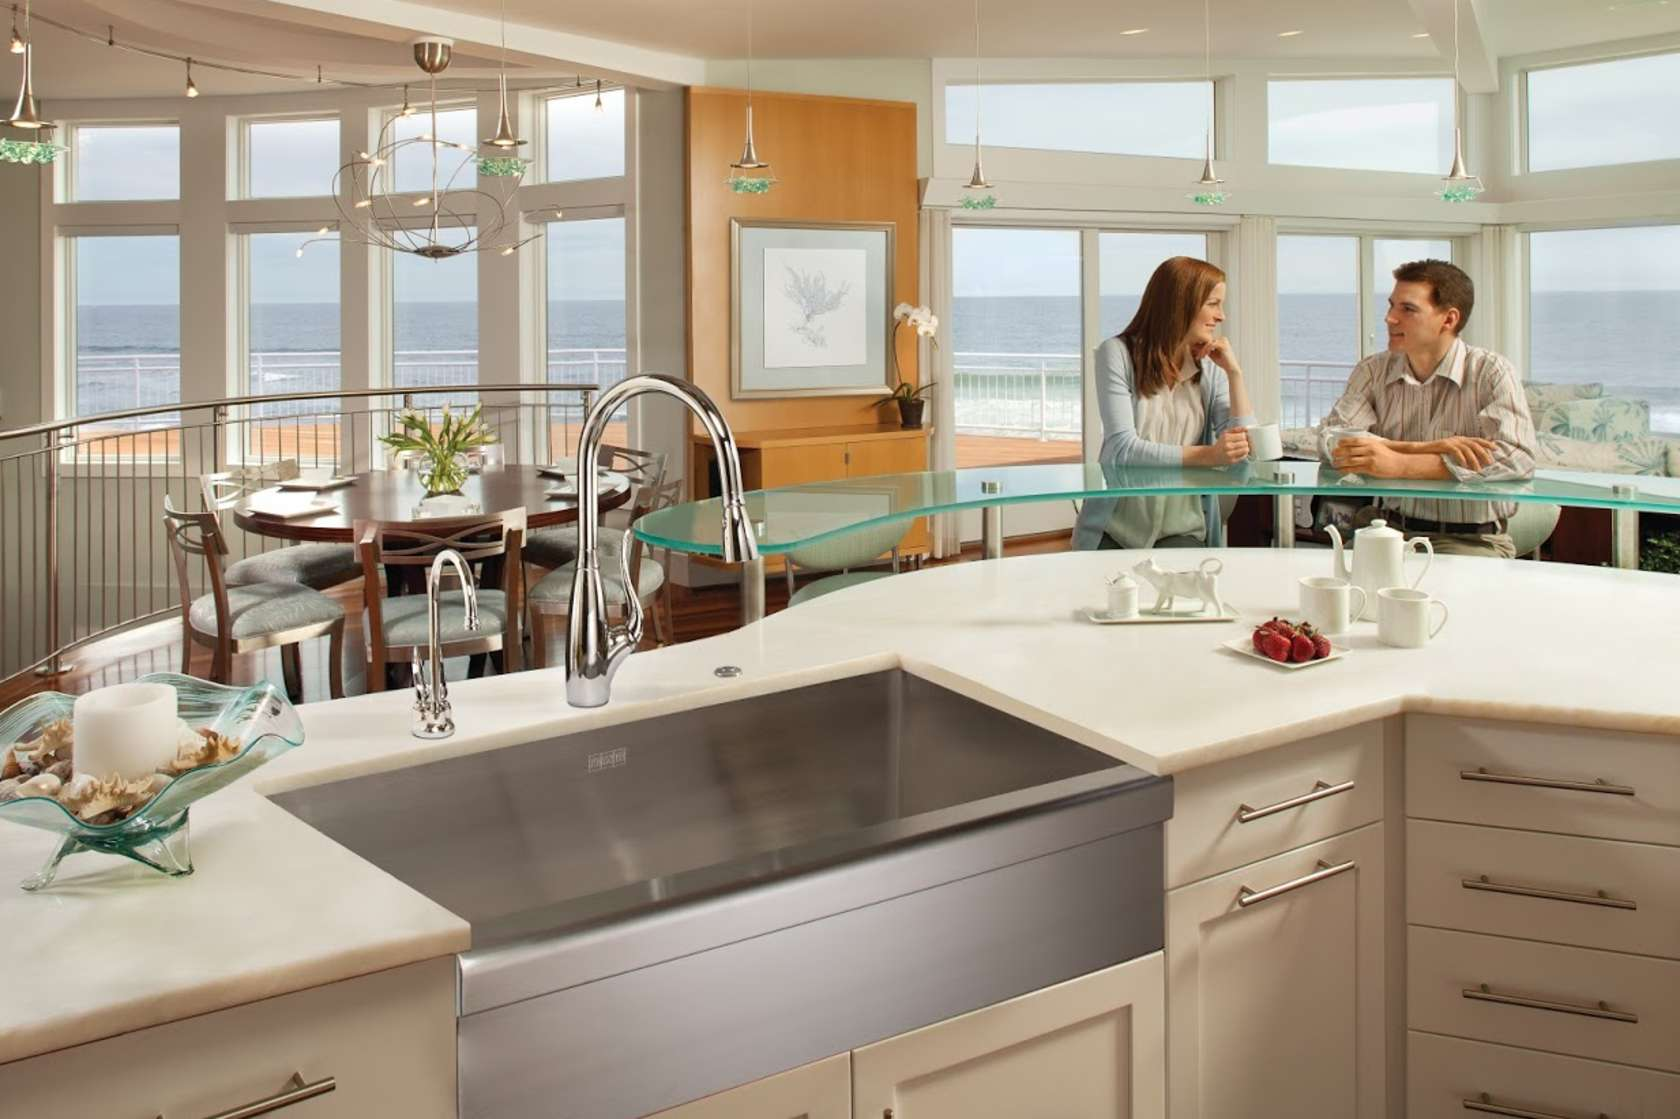 franke kitchen sinks pull out cabinets architizer